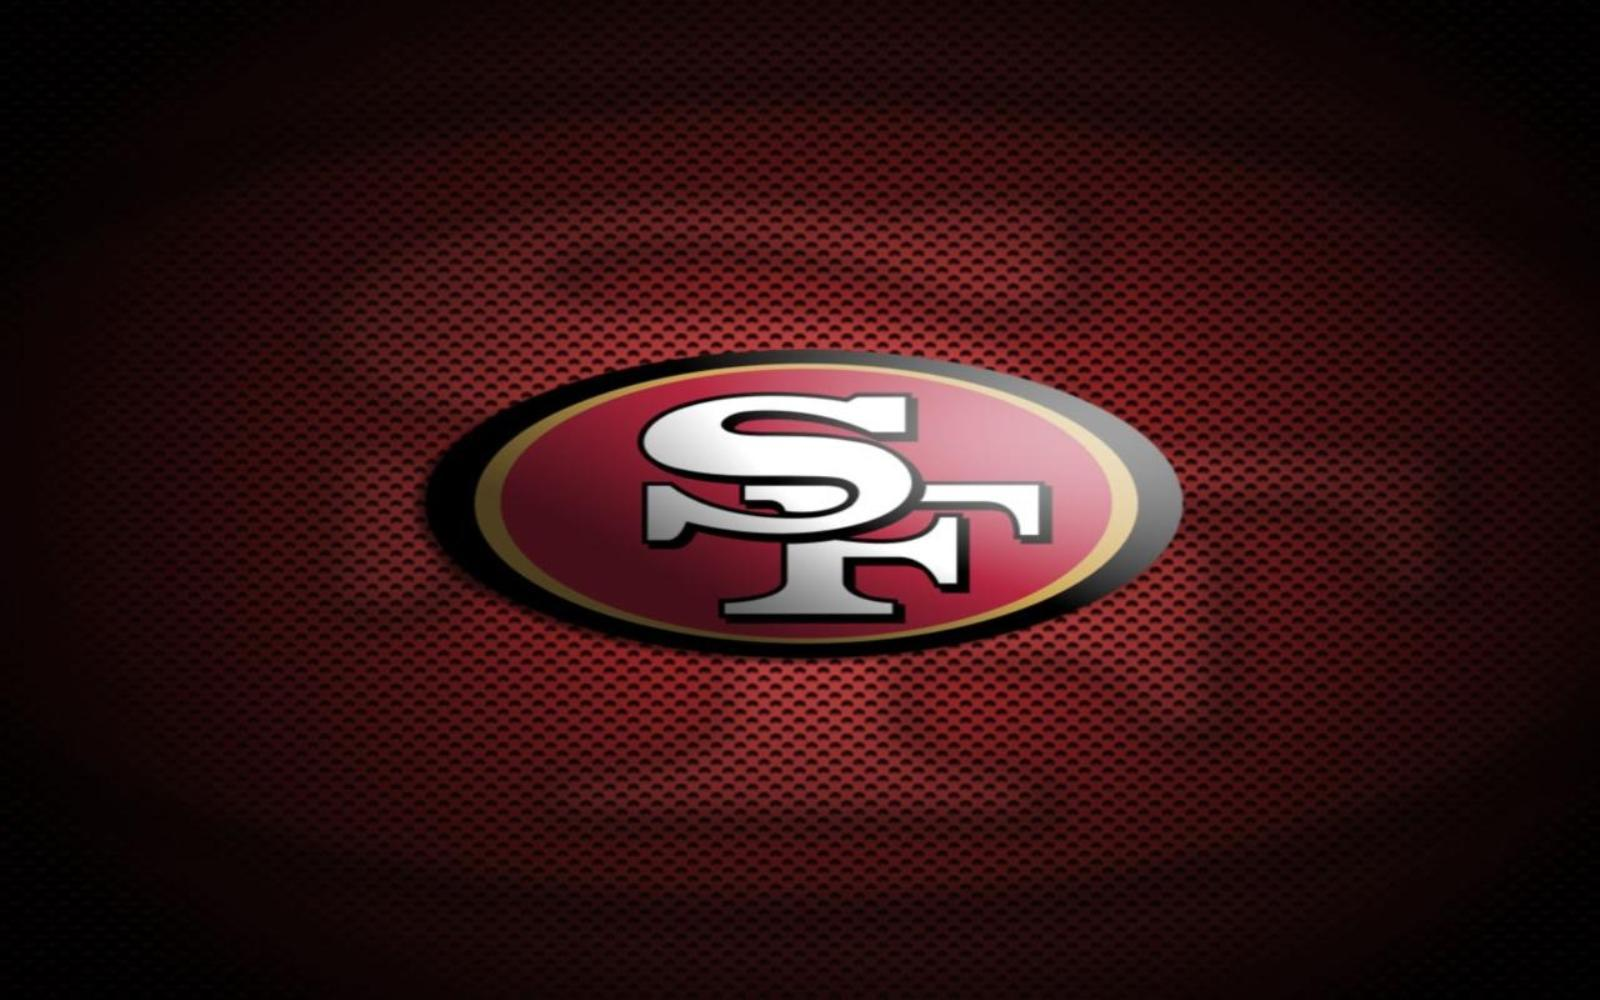 Free 49ers wallpapers your phone wallpaper cave 49ers wallpaper san francisco 49ers wallpaper desktop background voltagebd Gallery